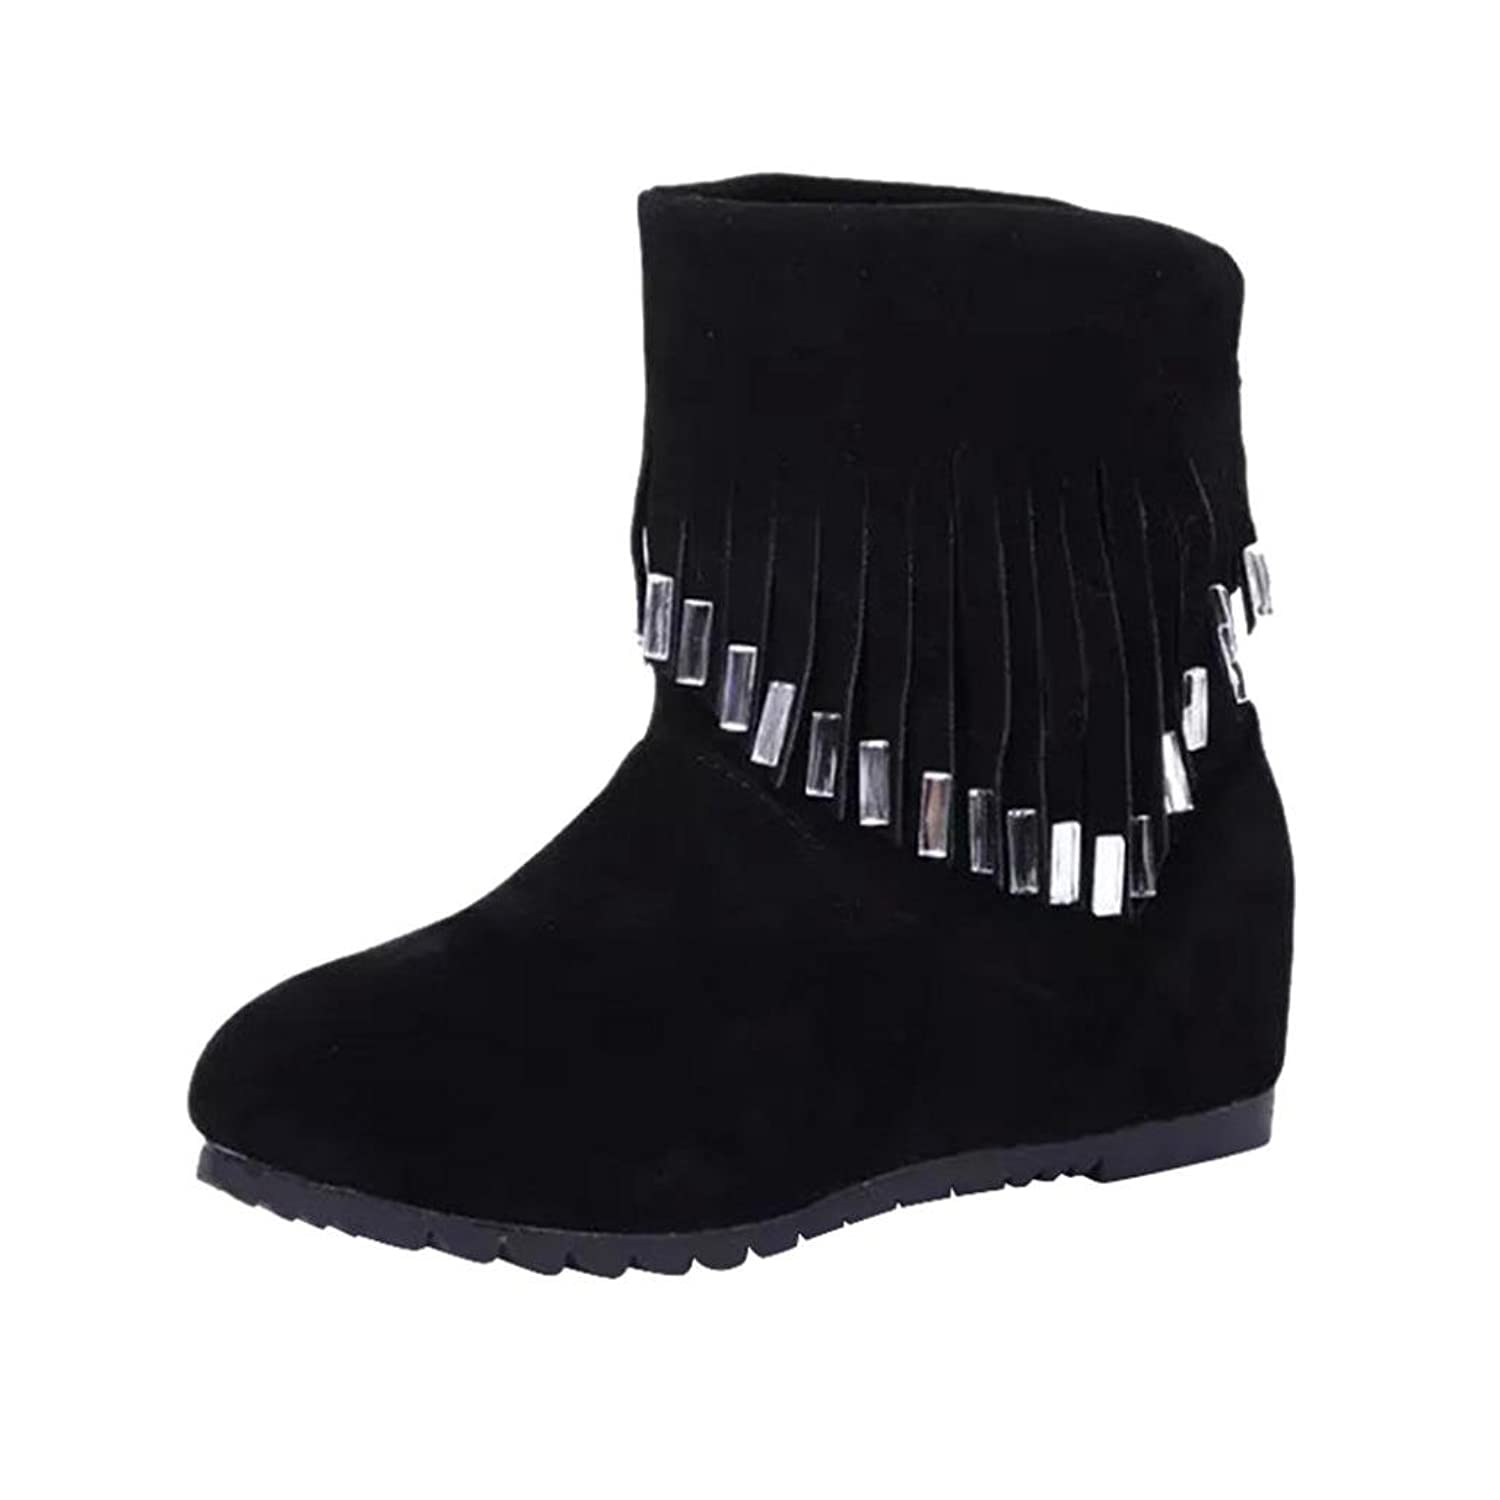 ☆ ▷ ♤ Pretty Women's Snow Boots